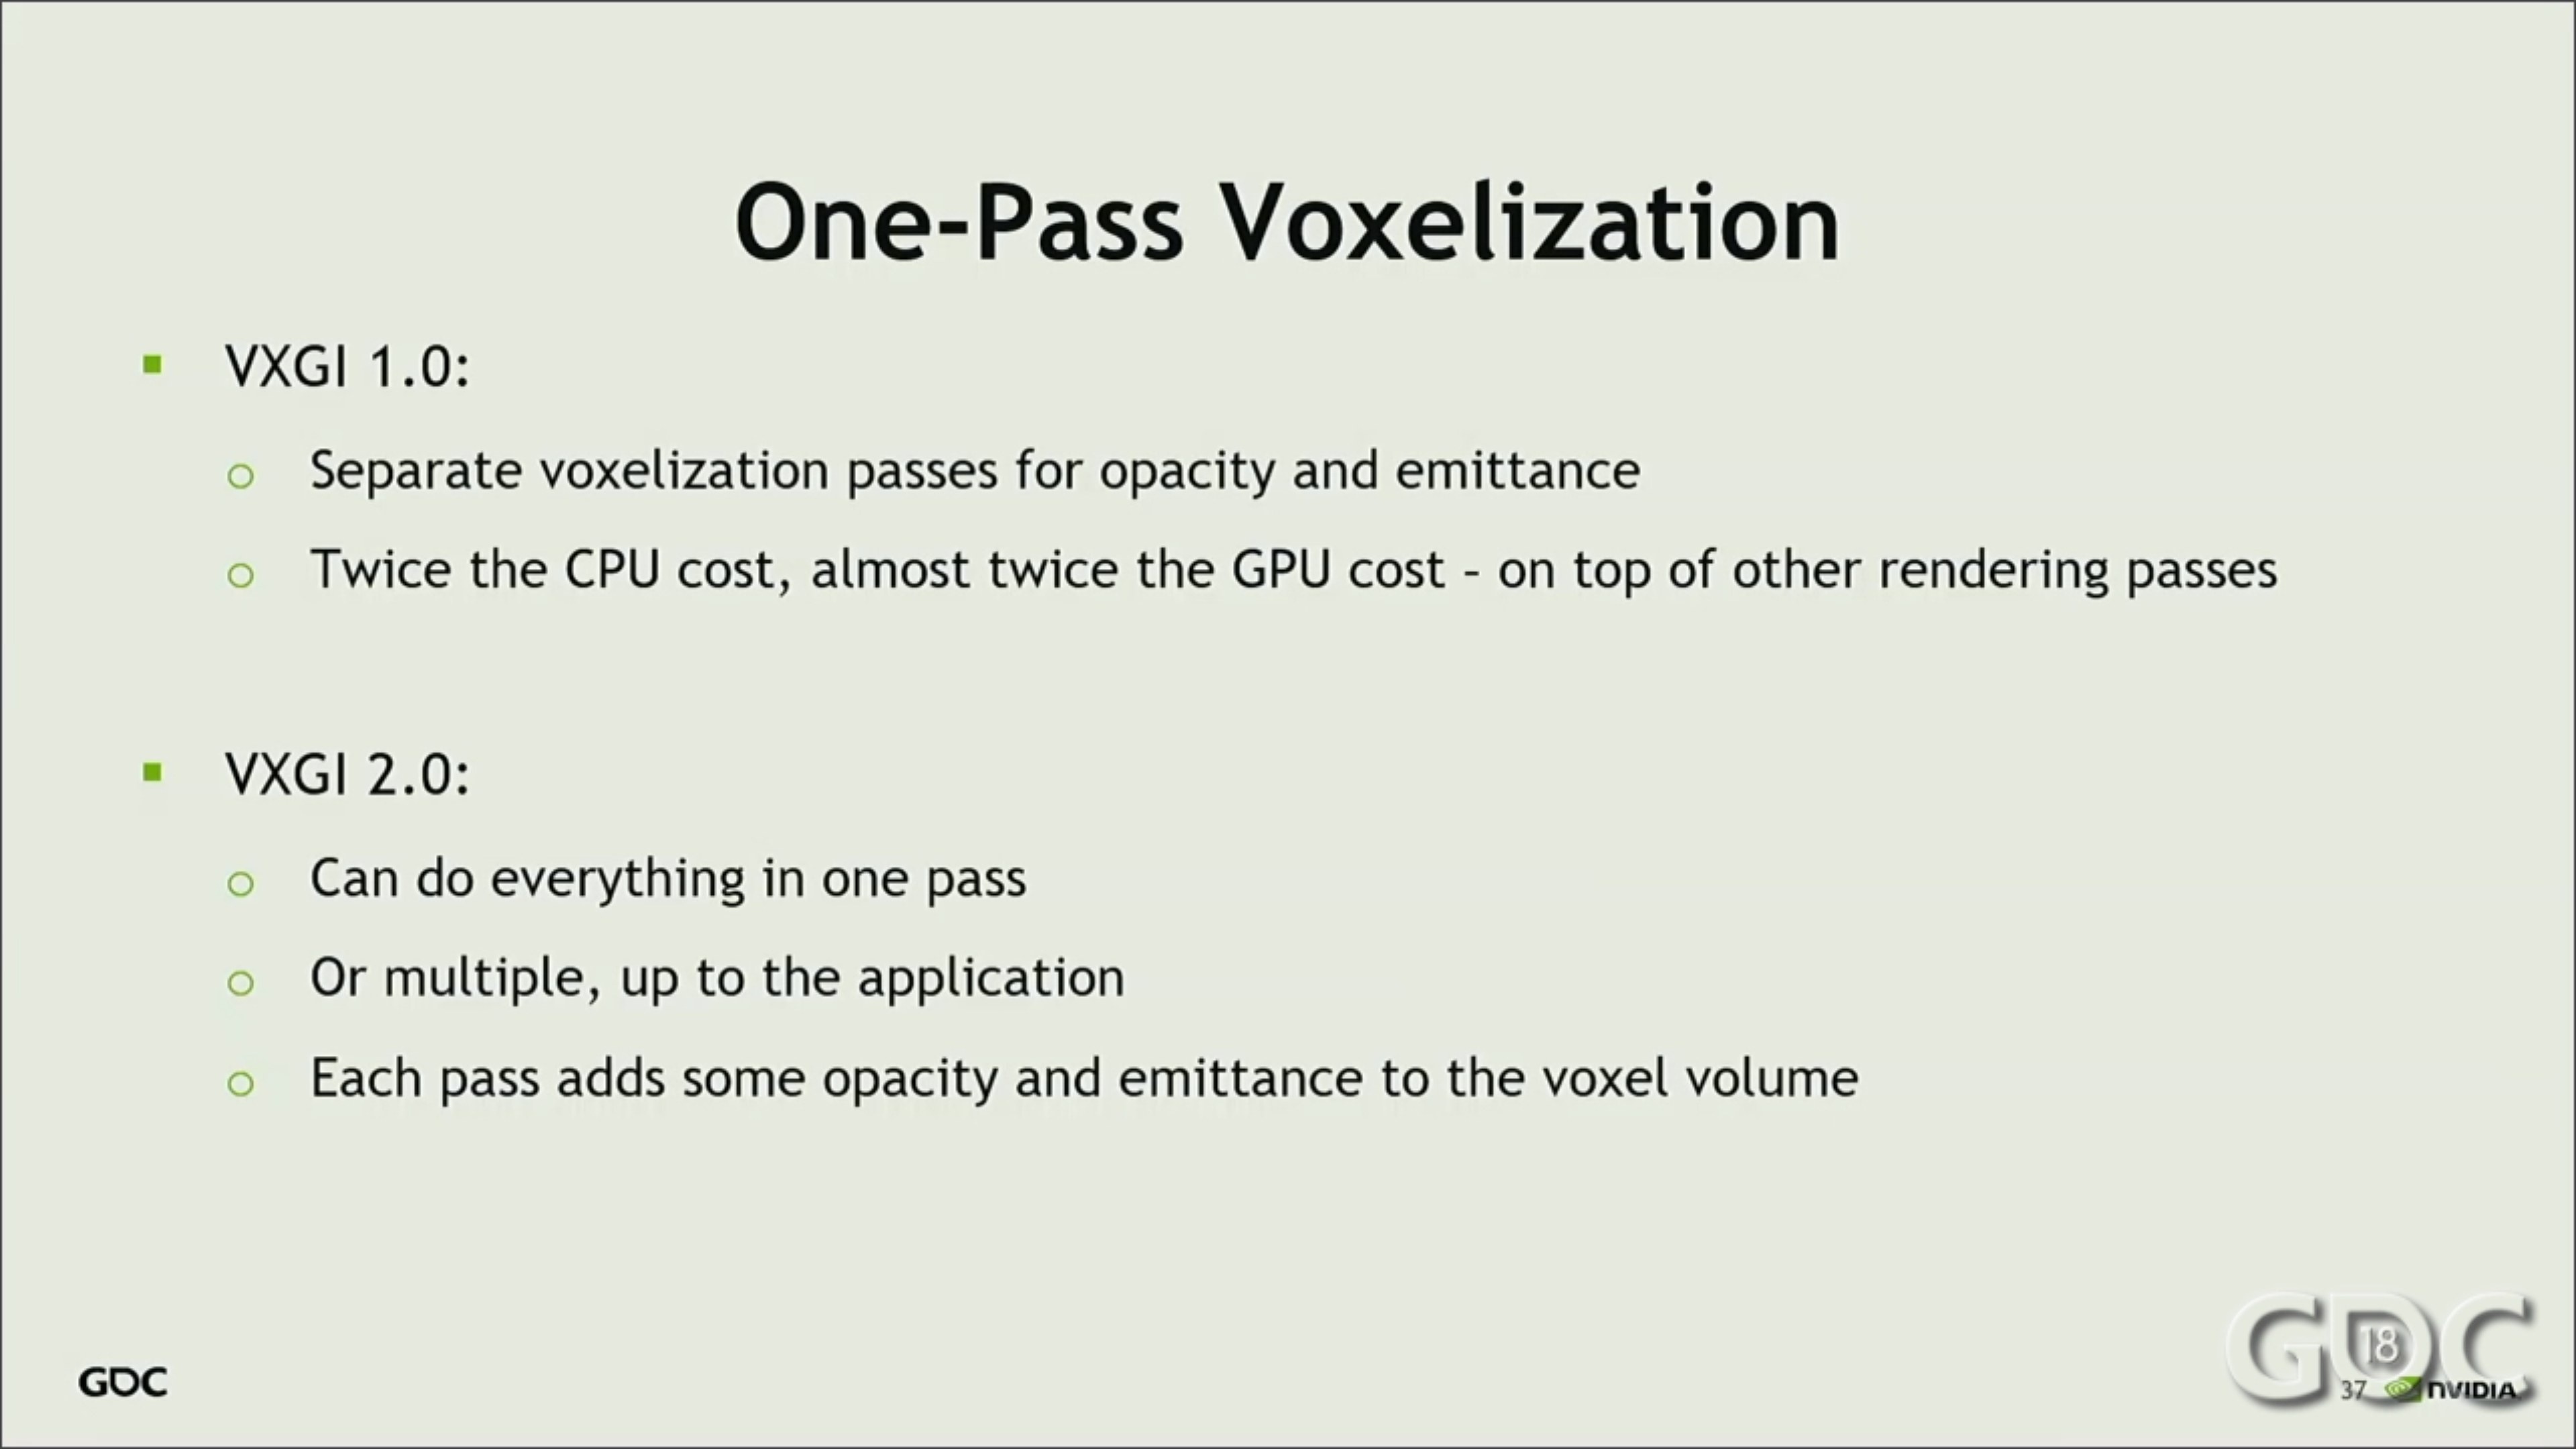 This image tells us about the difference between VXGI 1.0 and VXGI 2.0 for one-pass voxelization. VXGI 2.0 will be able to do everything in one pass or multiple according to the application and each pass will add some opacity and emittance to the voxel volume.